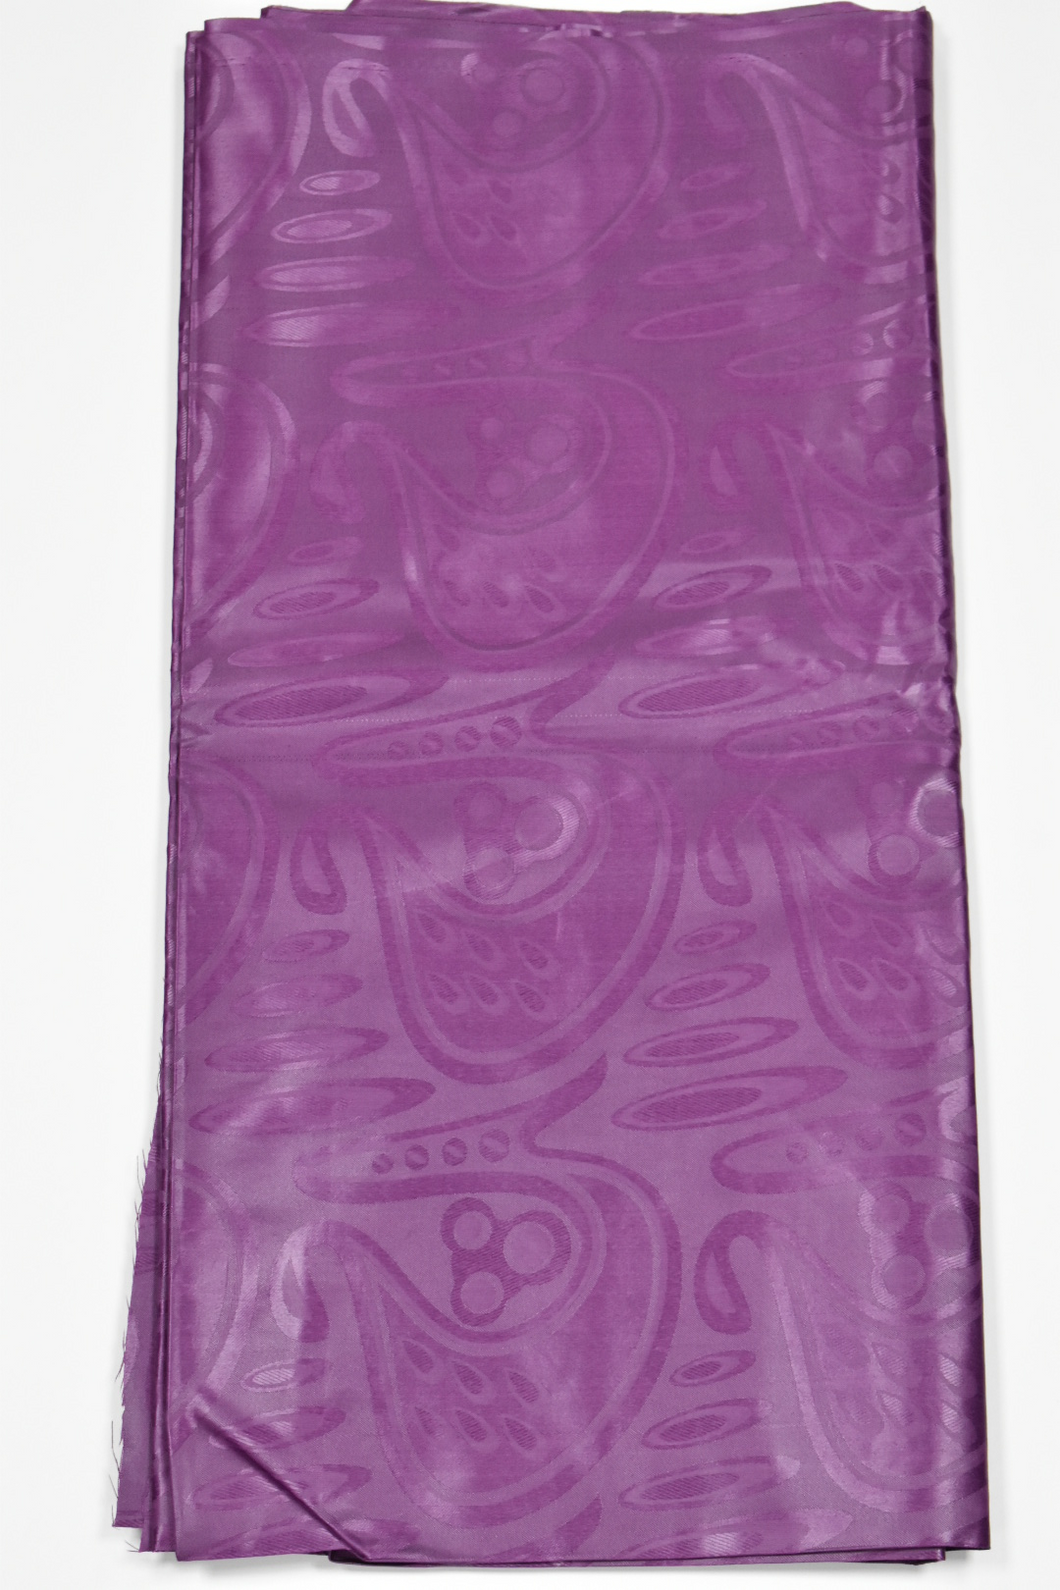 Plum Brocade - 5 Yards